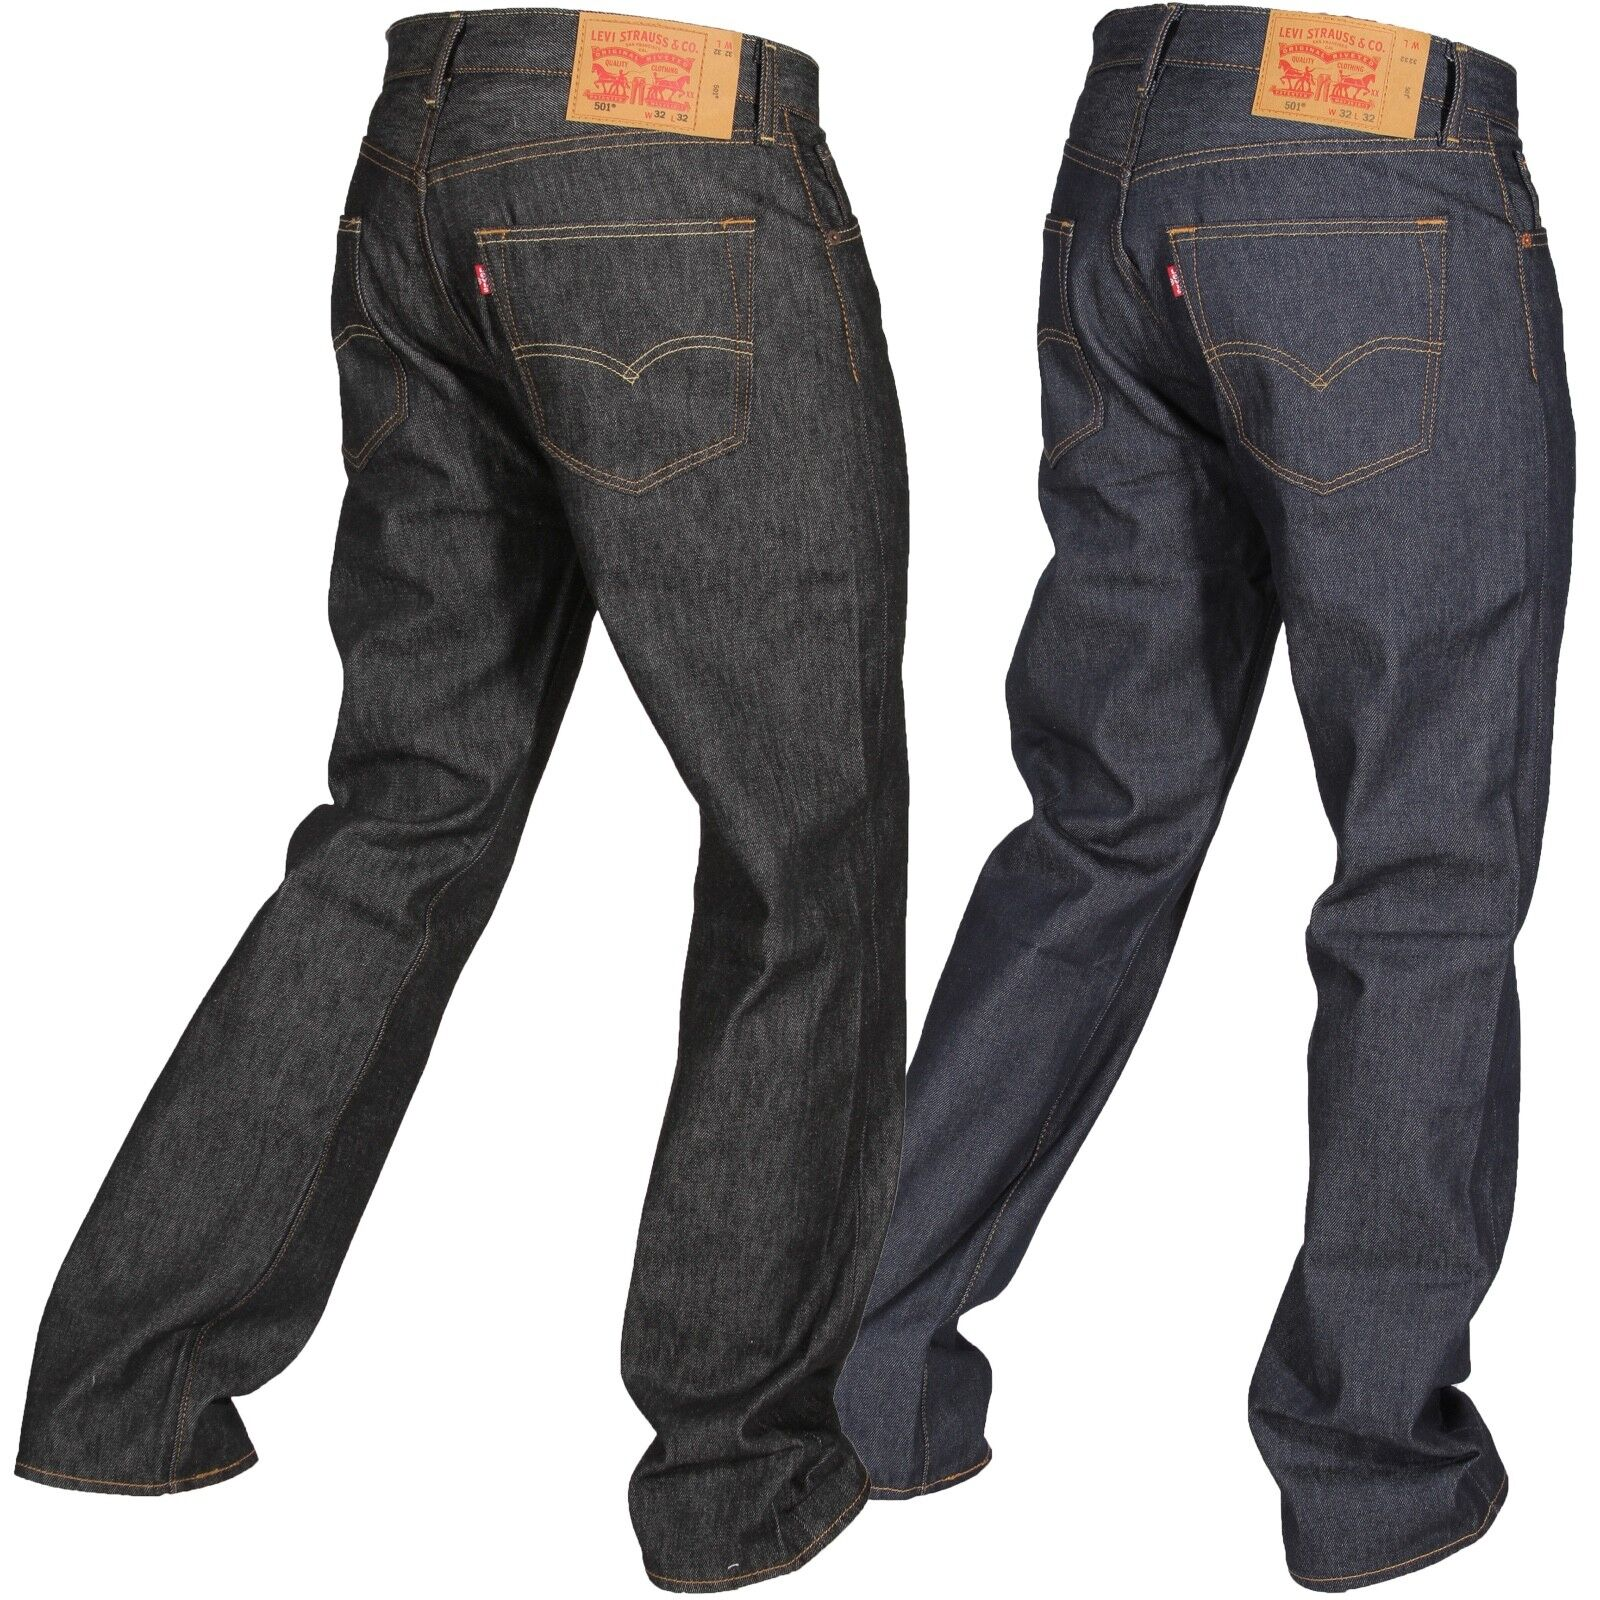 Levi/'s 501 shrink to fit jeans NWT mens/' 42 x 32 button fly